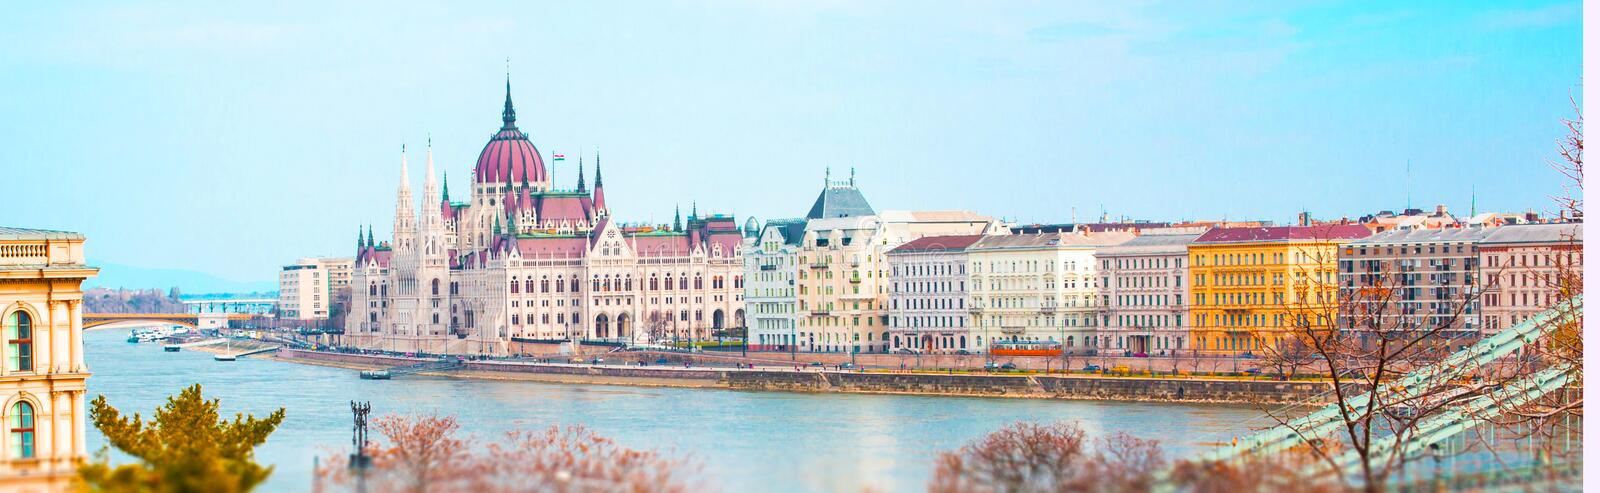 Panorama with Hungarian Parliament building and Danube river, Budapest royalty free stock image